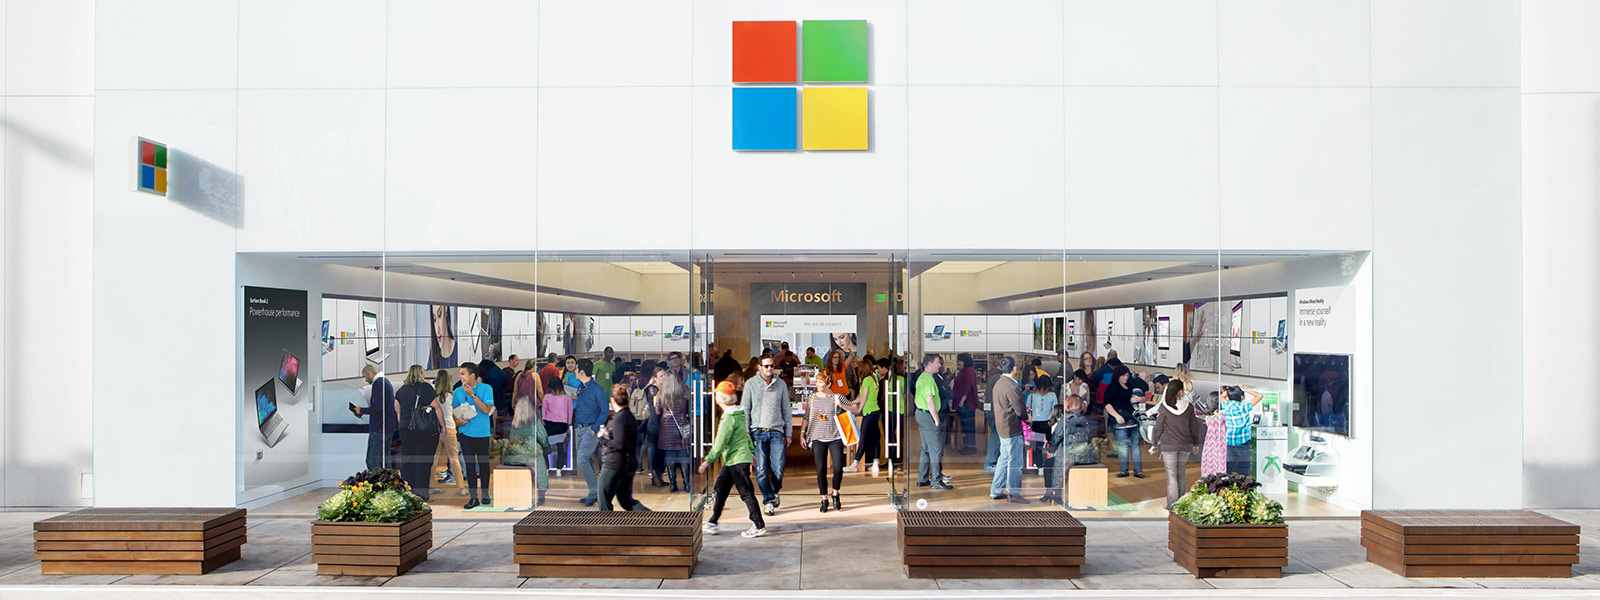 A view of the front of a Microsoft Store filled with shoppers